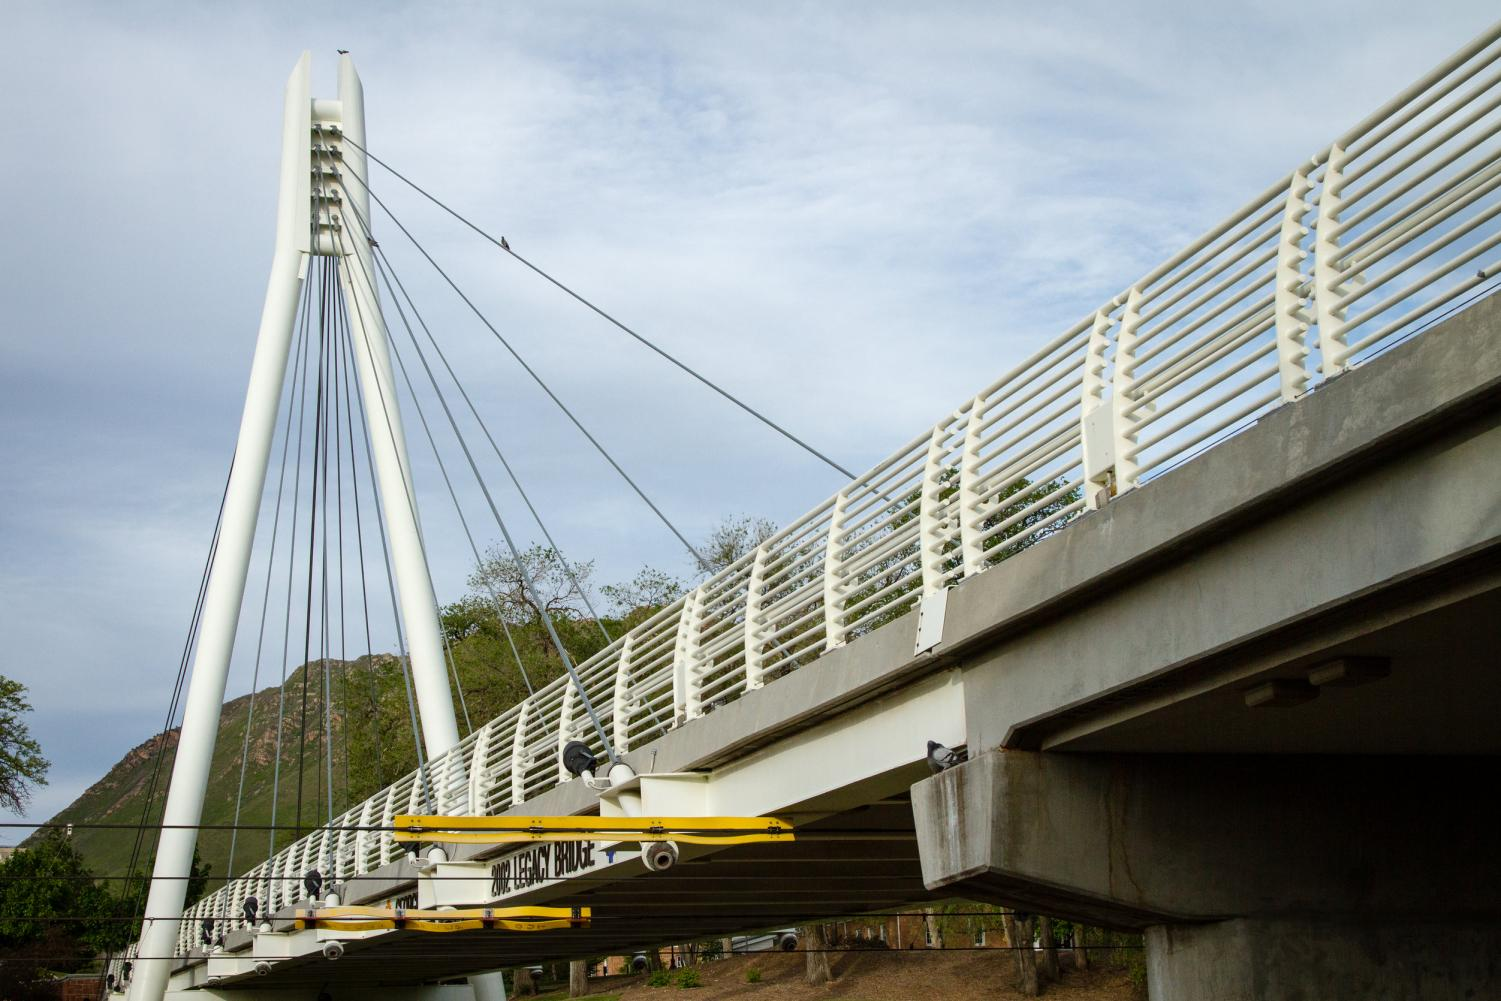 The Legacy Bridge that connects upper and lower campuses at the University of Utah, Salt Lake City, UT 5/14/17. (Photo by Adam Fondren | The Daily Utah Chronicle)